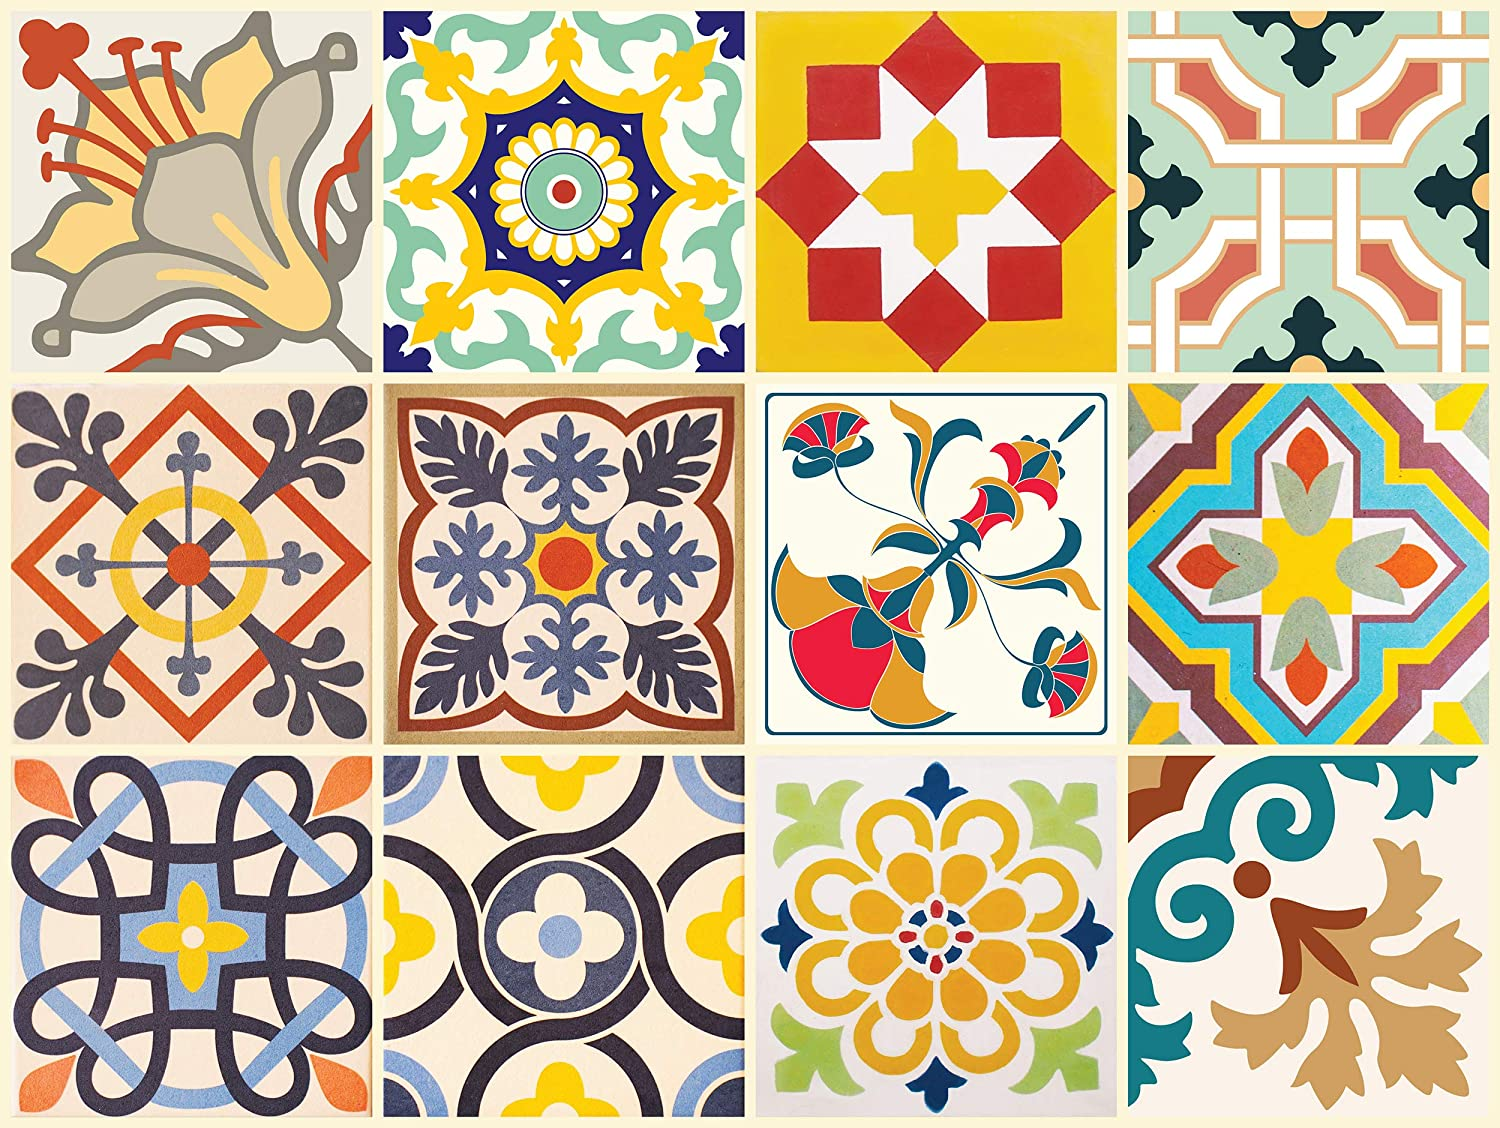 The Nisha 24 PC Pack Art Eclectic Peel and Stick Wall Sticky Backsplash Vinyl Waterproof Removable Tile Sticker Decals for Bathroom & Kitchen, 4x4 Inch, Cheerful 1282